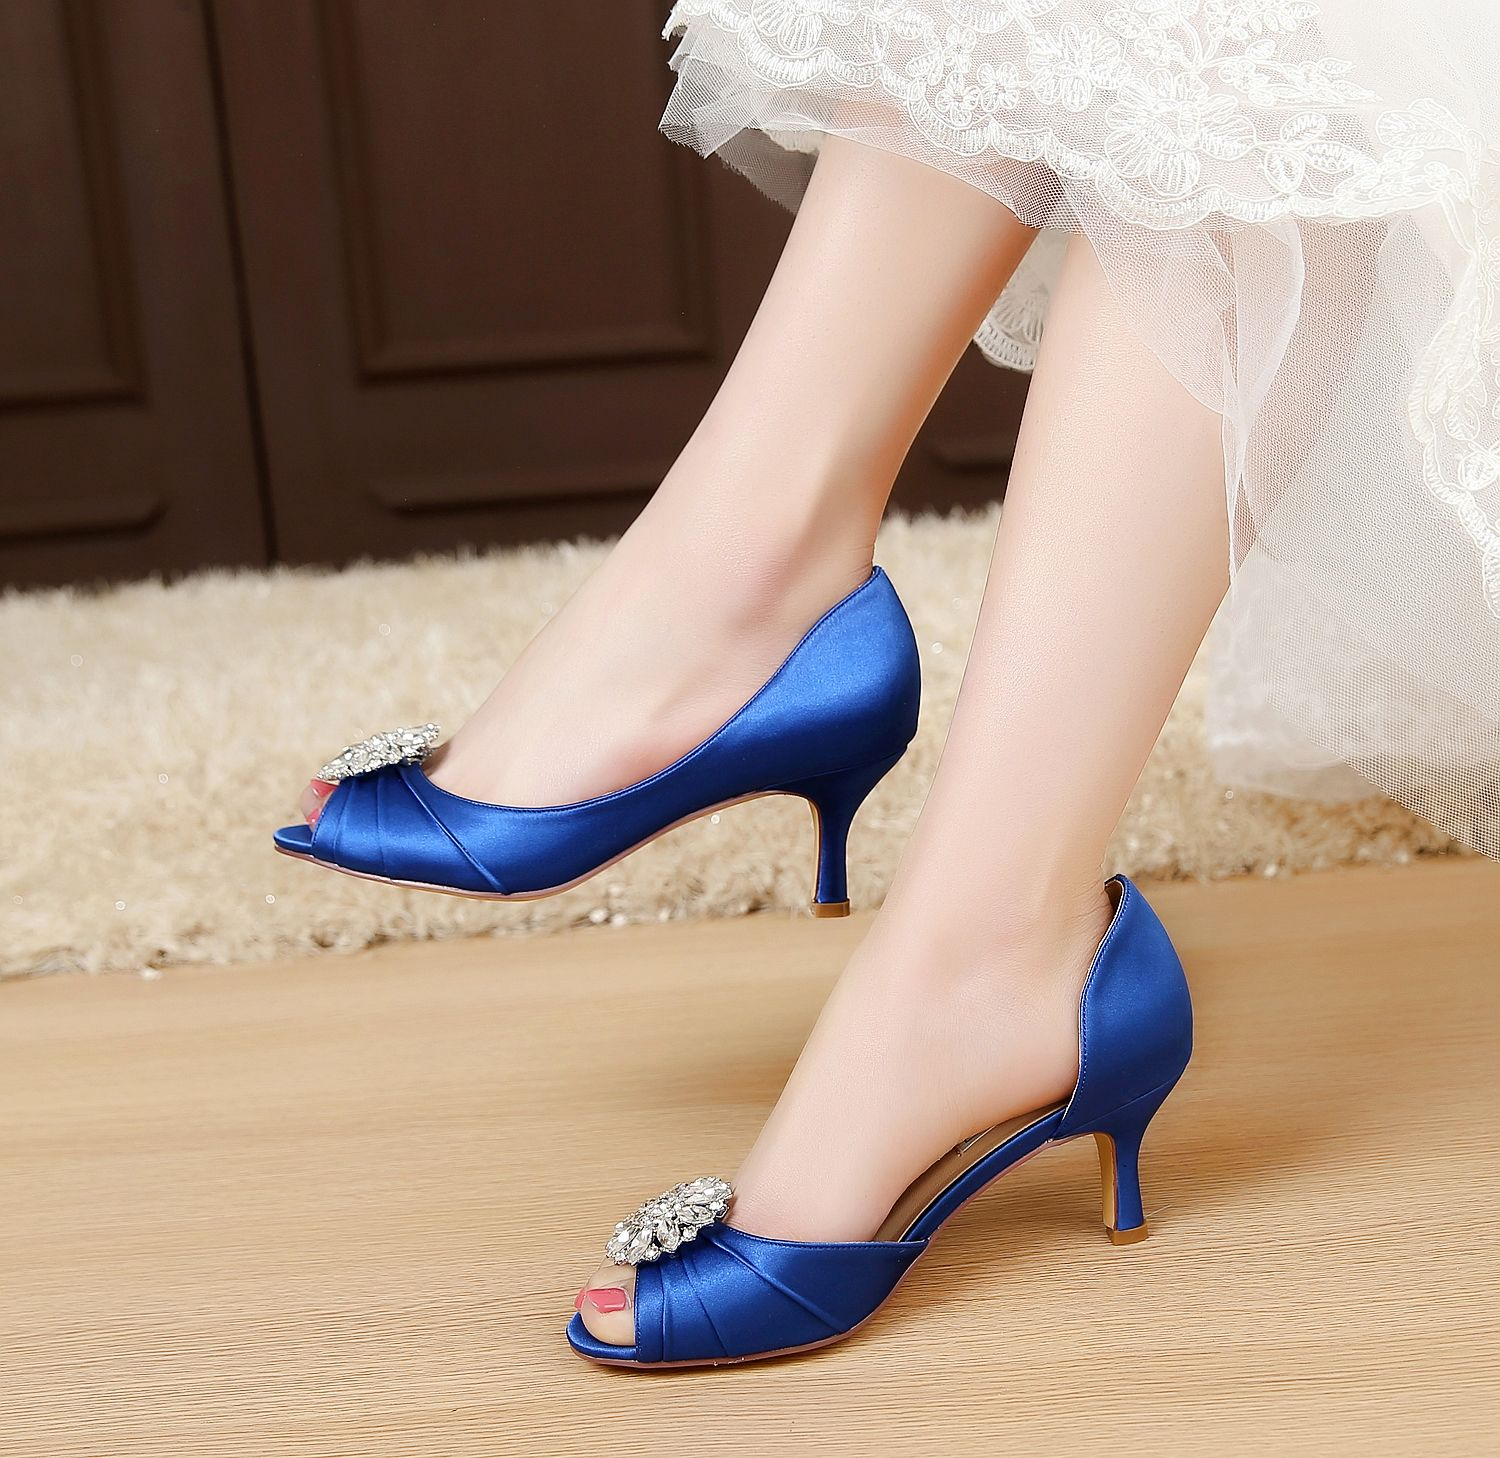 royal blue shoes - HD 1500×1458